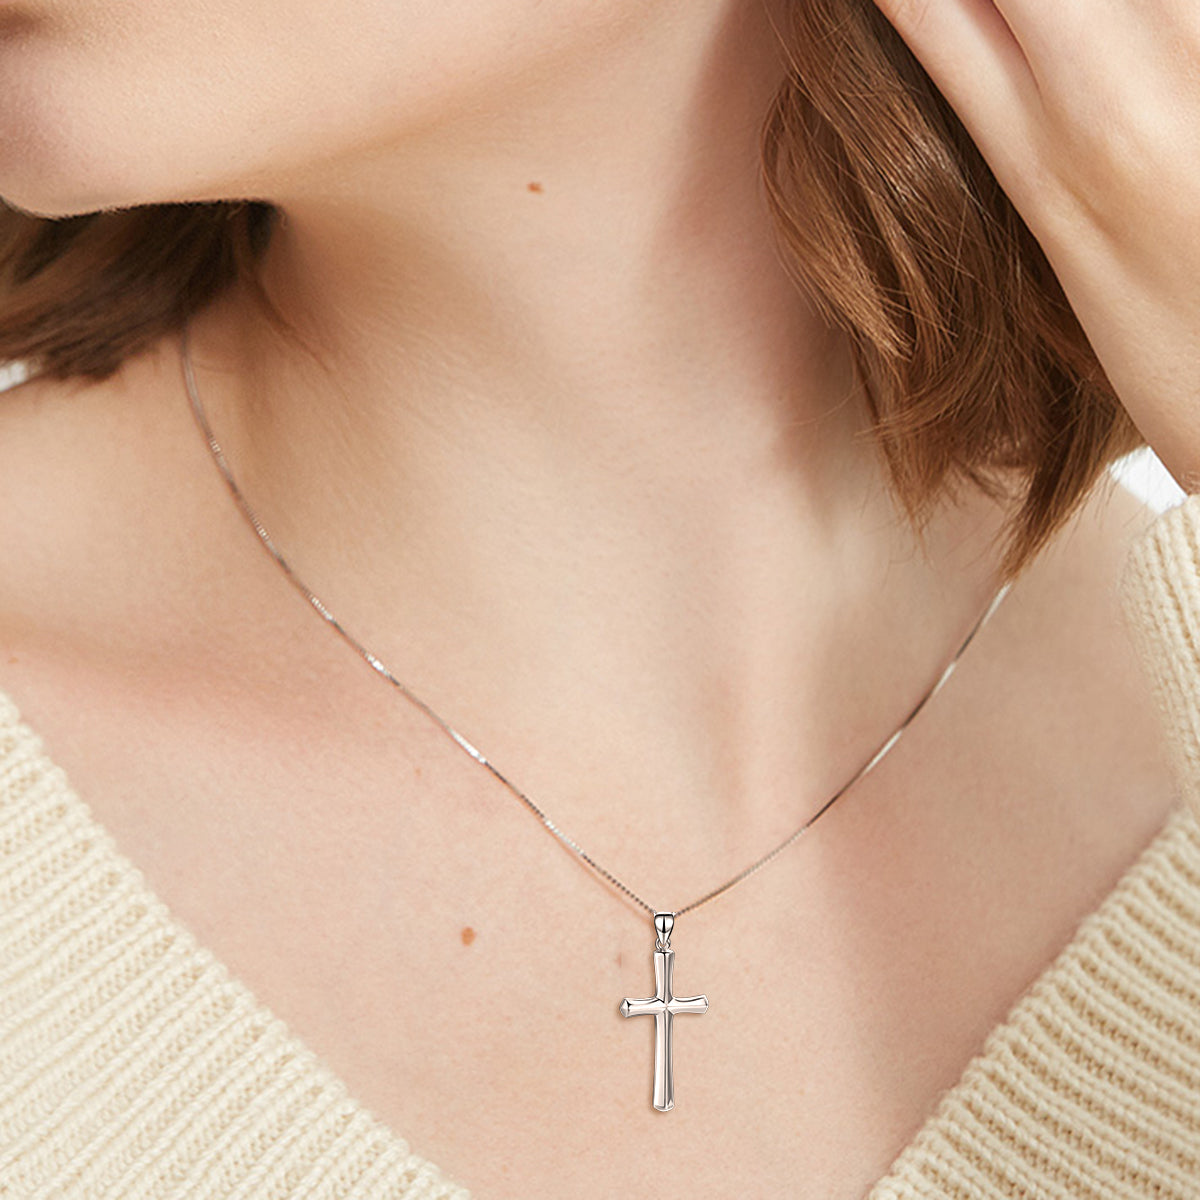 Cross Necklace For Husband Birthday Gift Jewelry Silver Cross Necklace